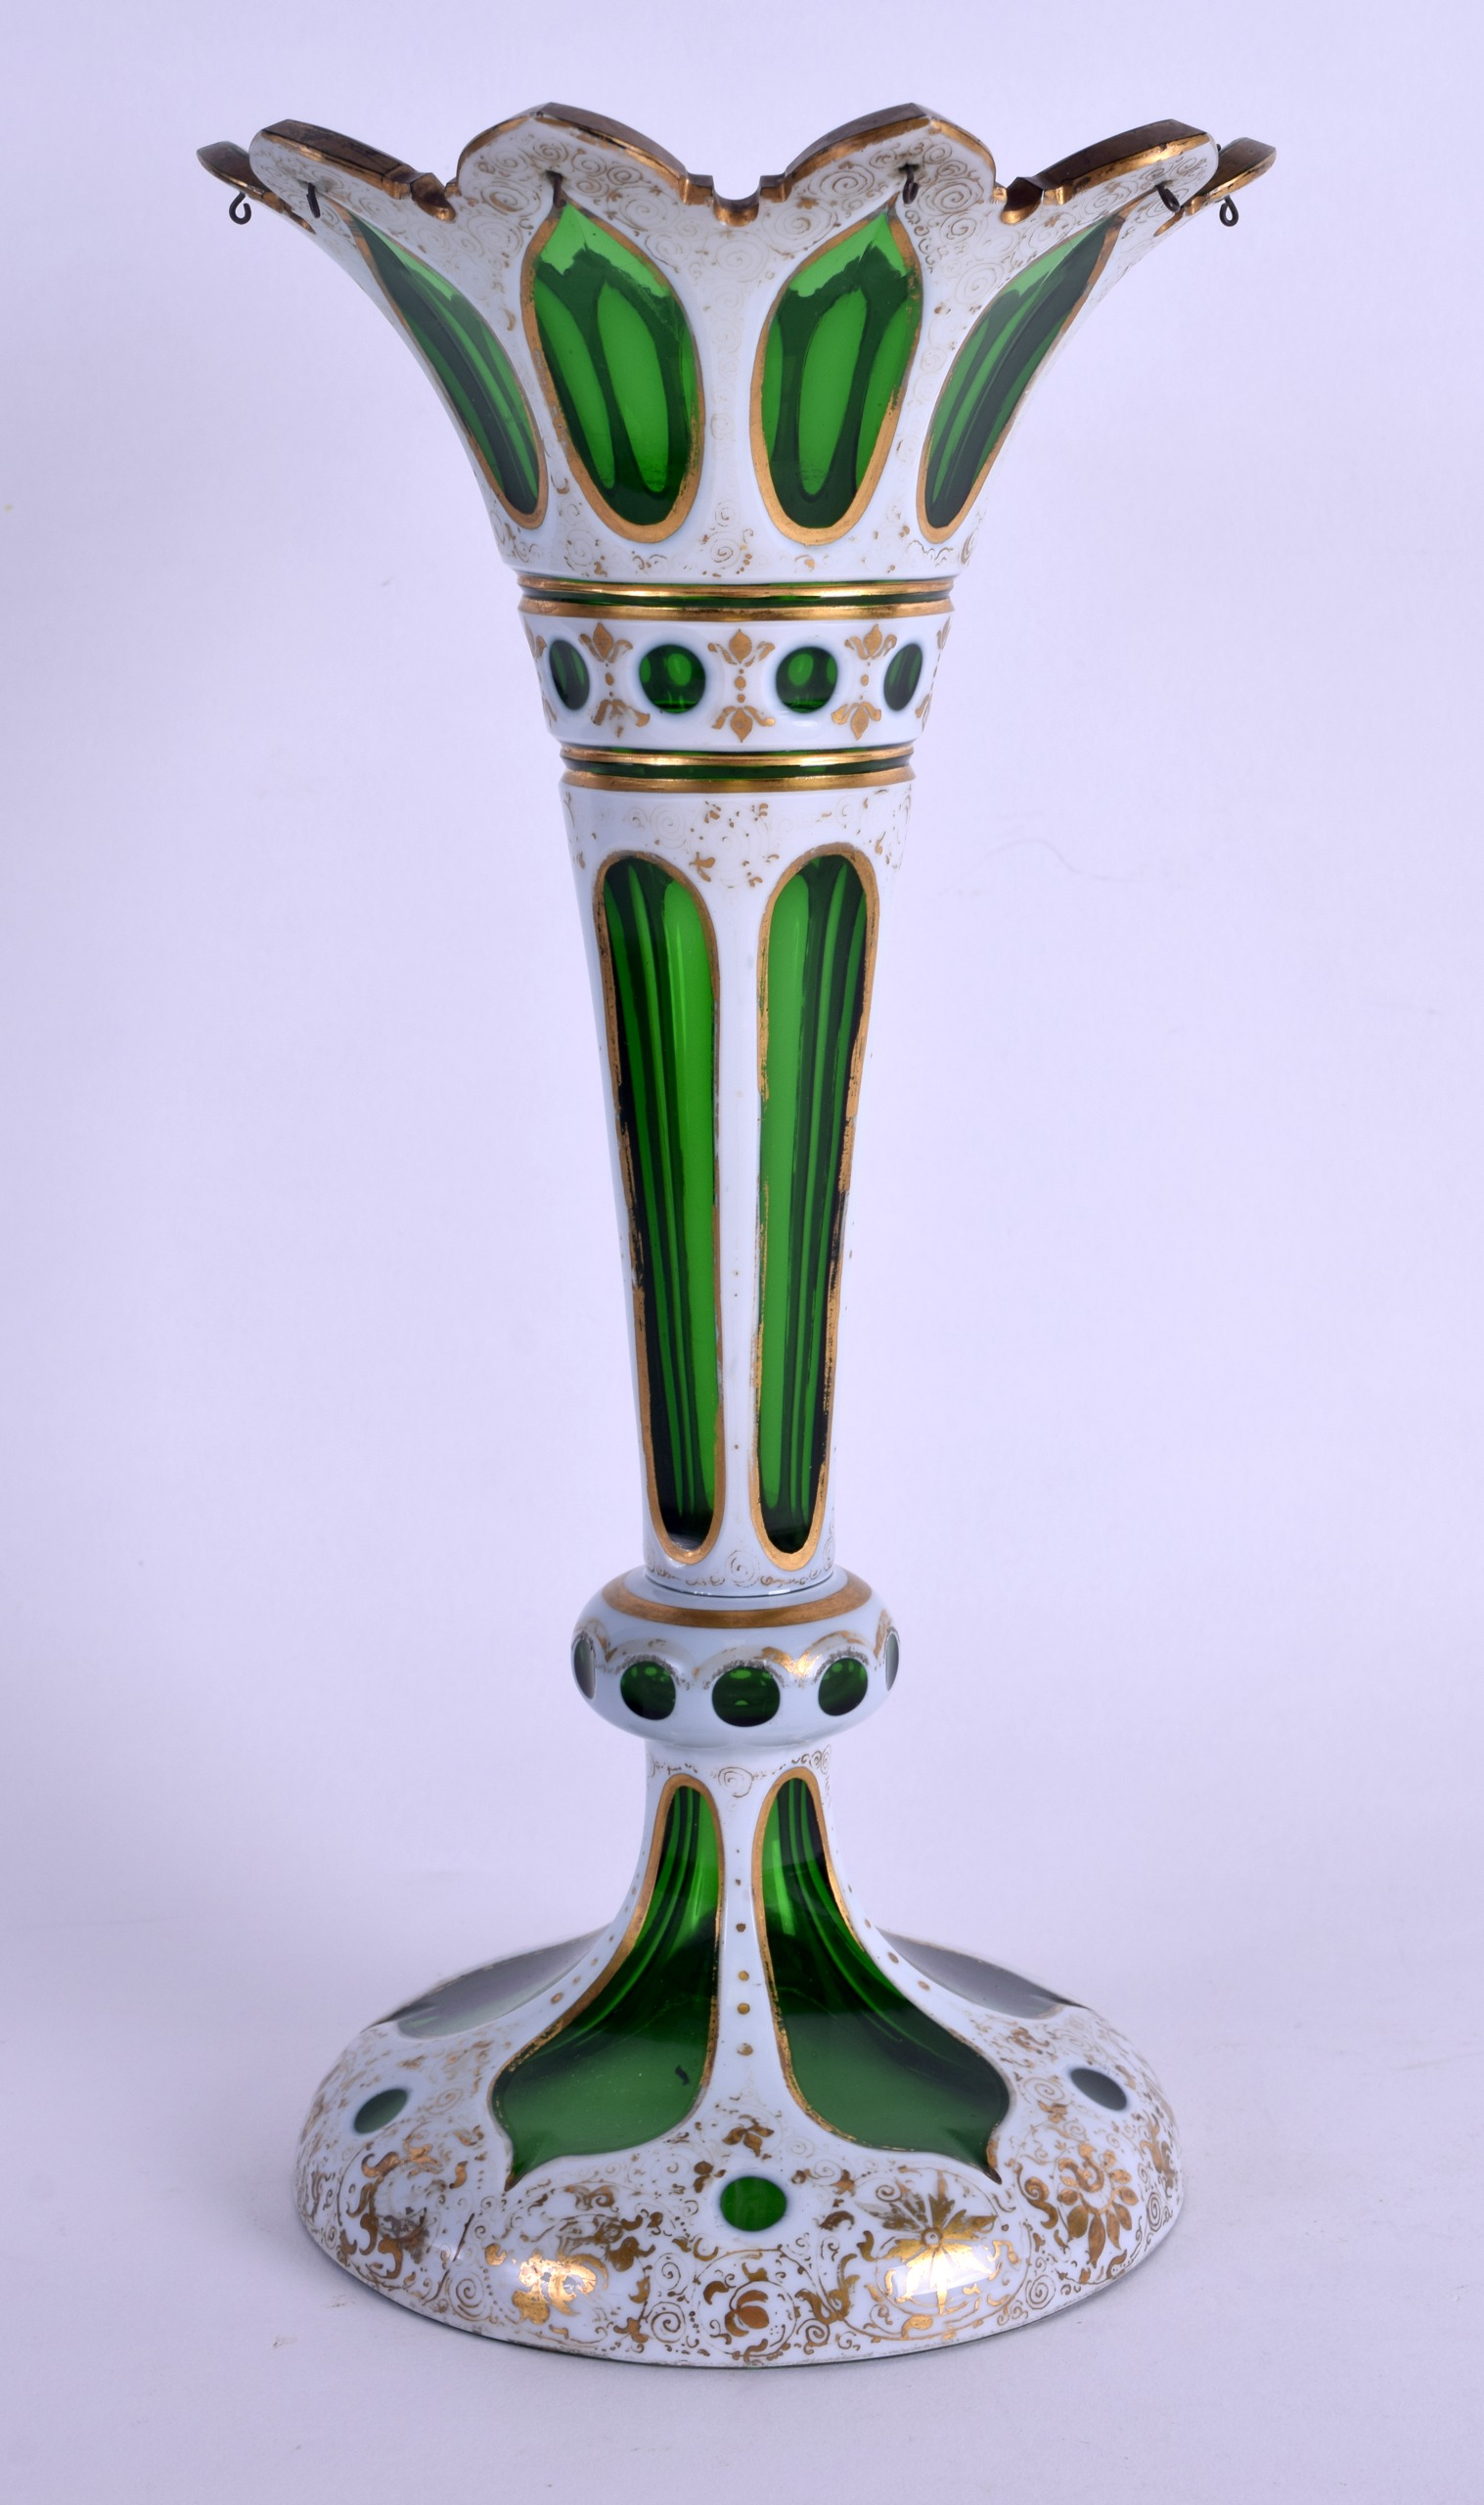 Lot 8 - A LATE 19TH CENTURY BOHEMIAN GREEN AND WHITE OVERLAID GLASS VASE painted in gilt with foliage. 26 cm